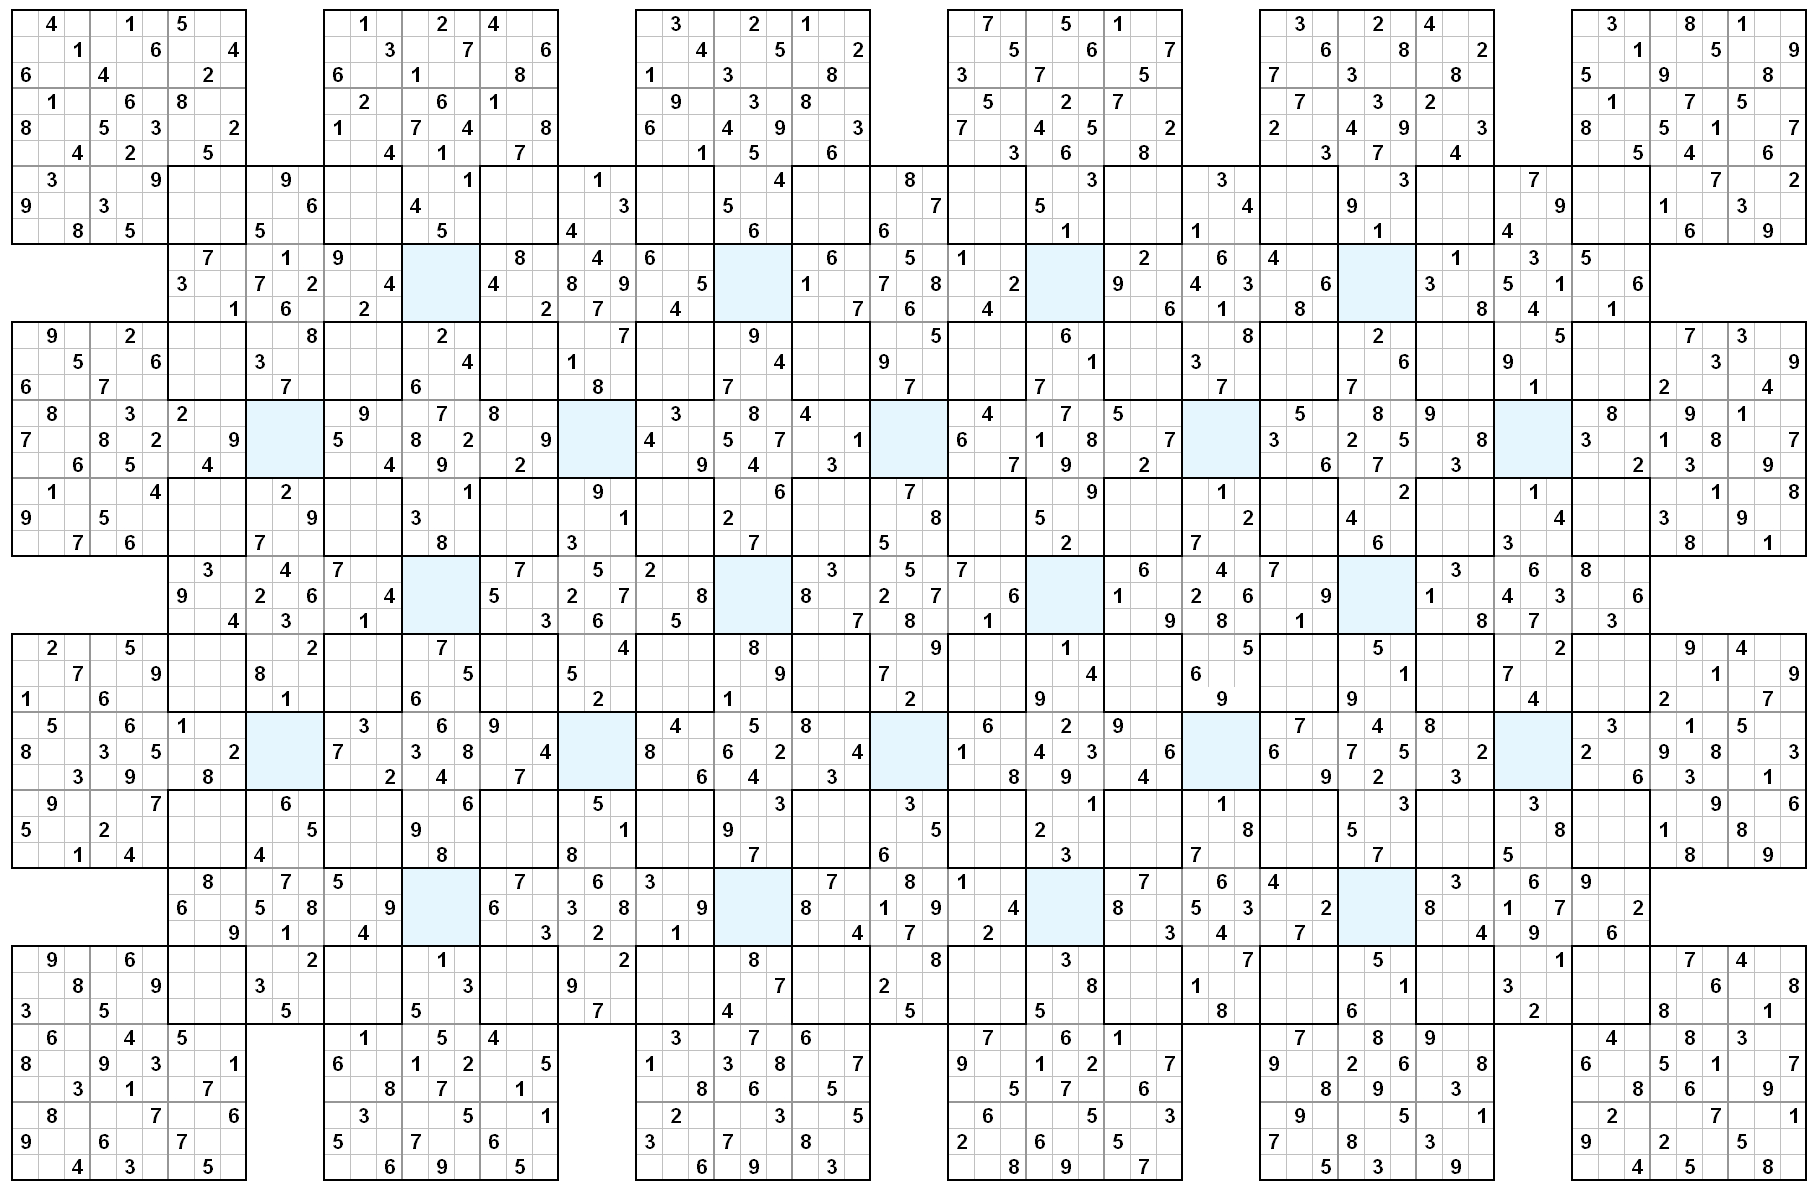 Source For Previous Daily Sudoku